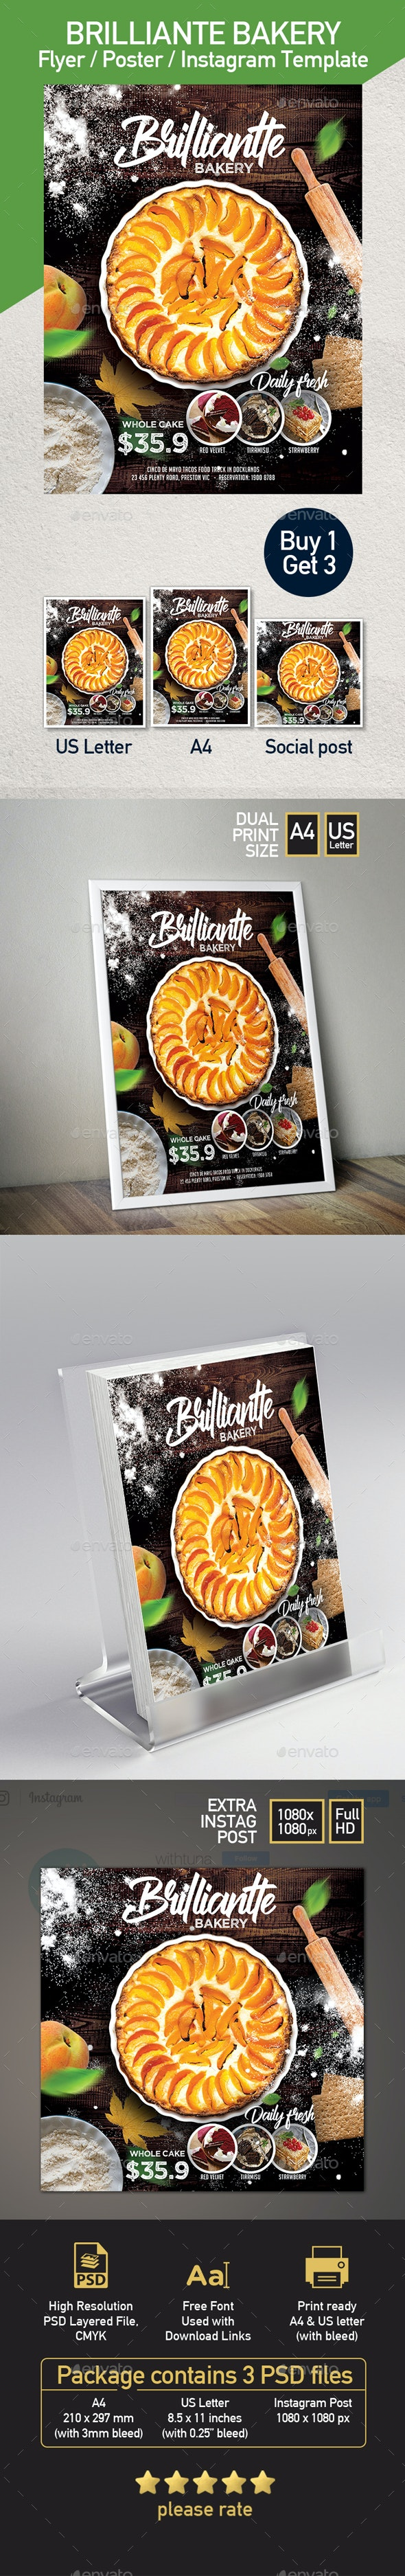 Bakery Pastry Flyer Template - Set of 3 Templates - Flyers Print Templates